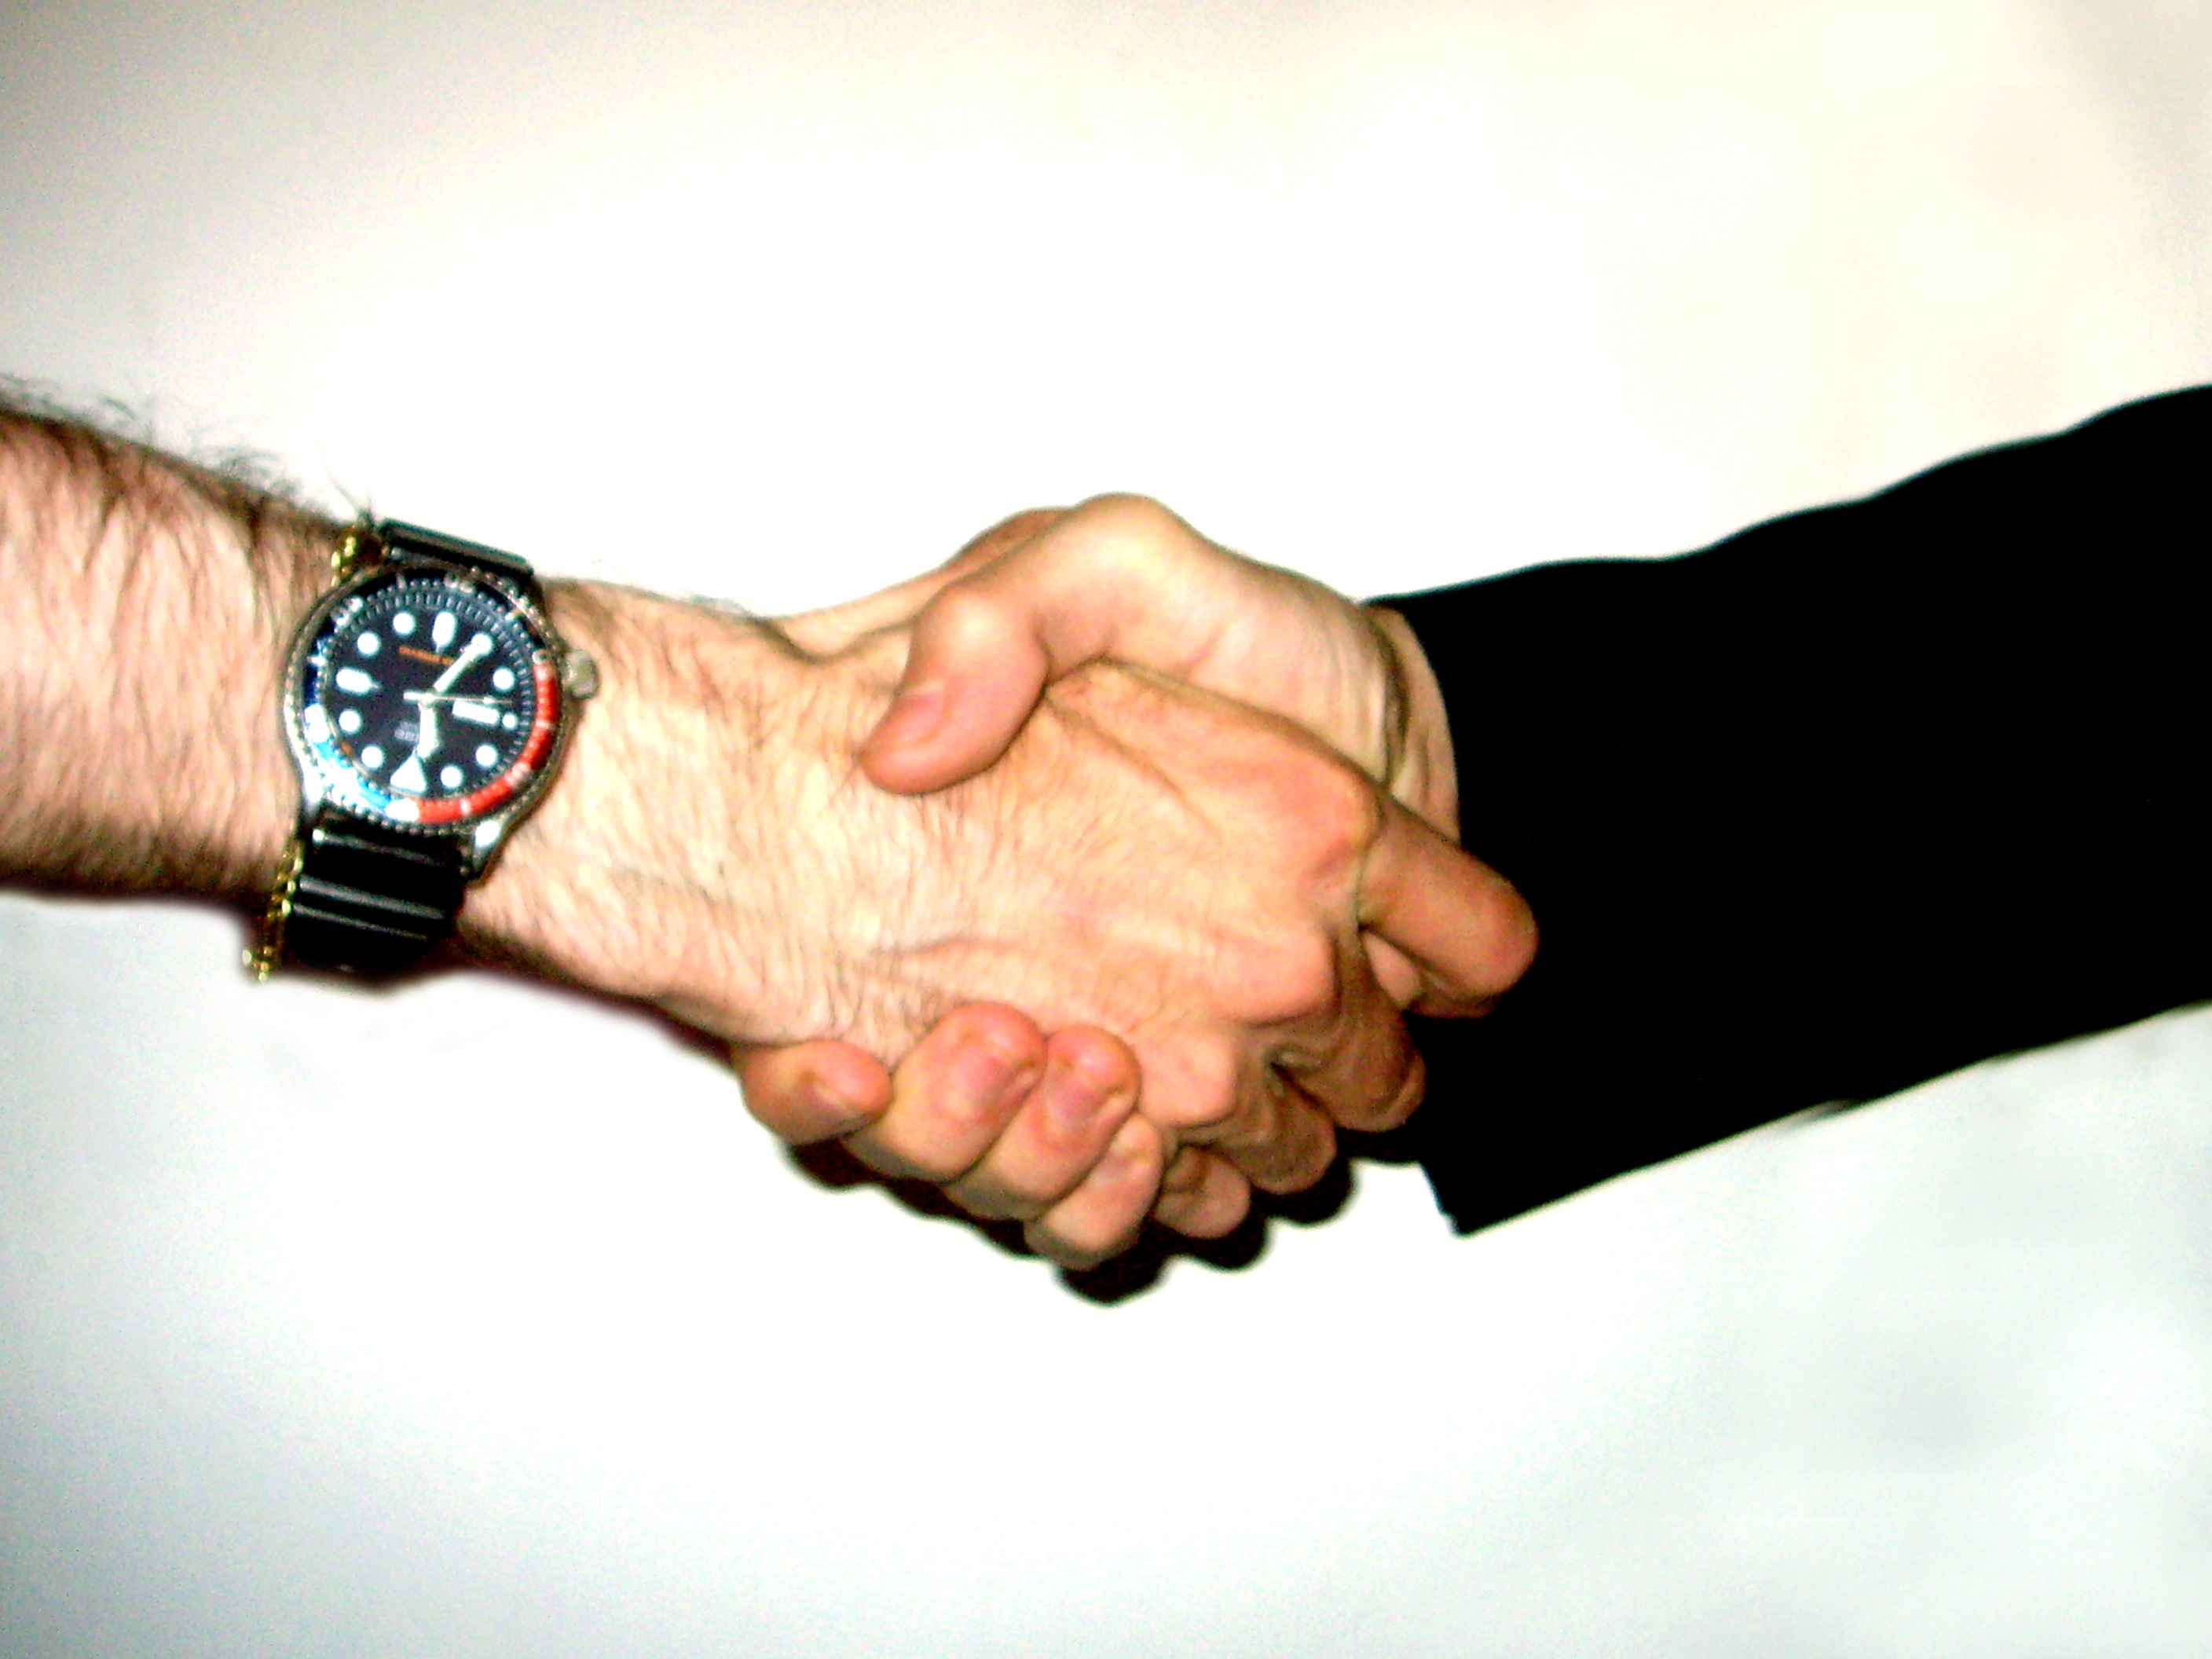 Images Of Shaking Hands - ClipArt Best